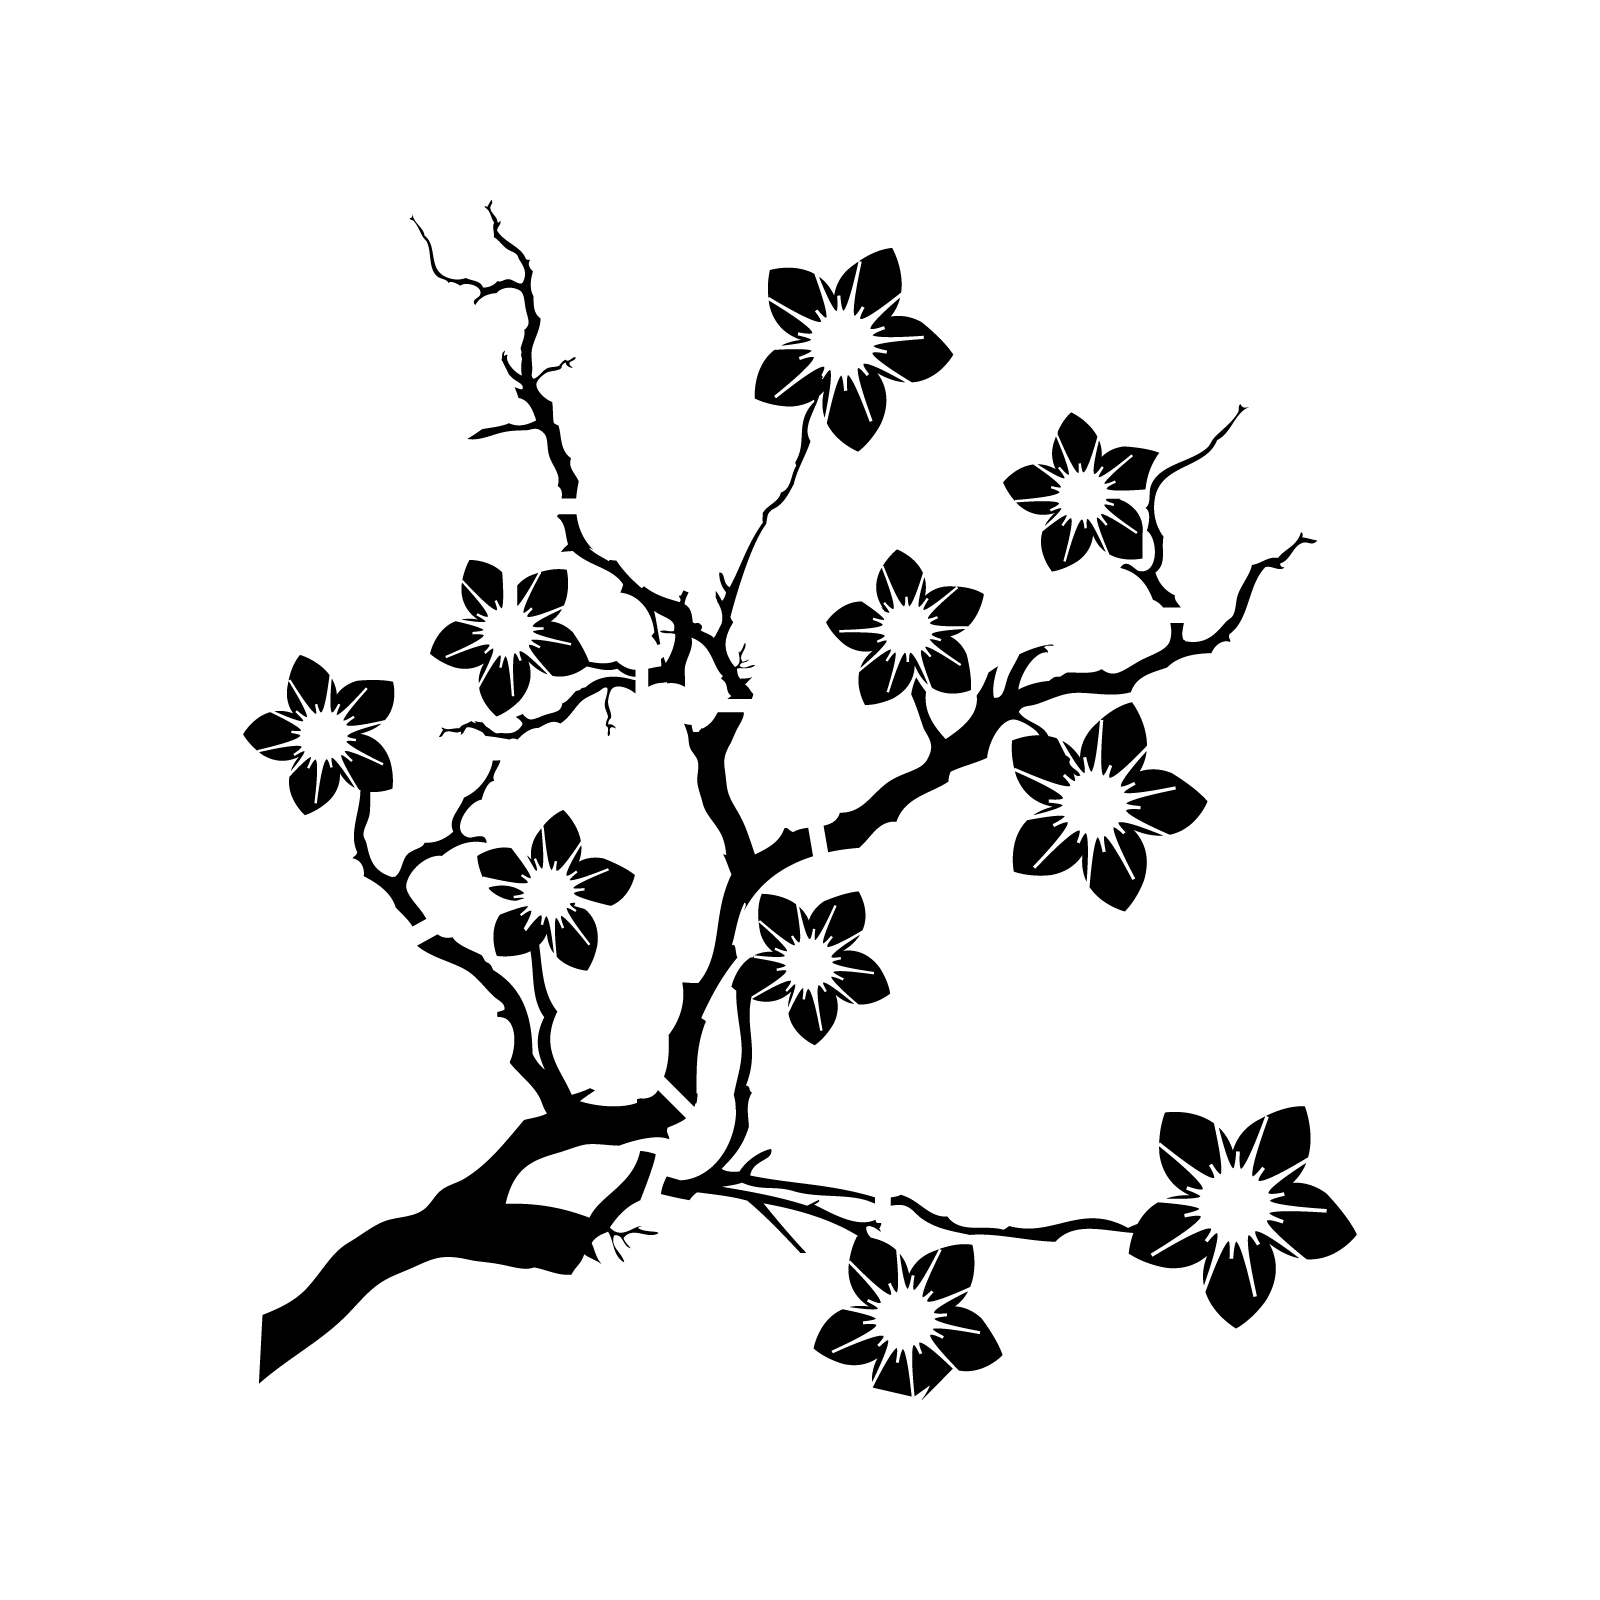 Cherry Blossom Tree Black And White: Cherry Blossom, Stencil Crafts